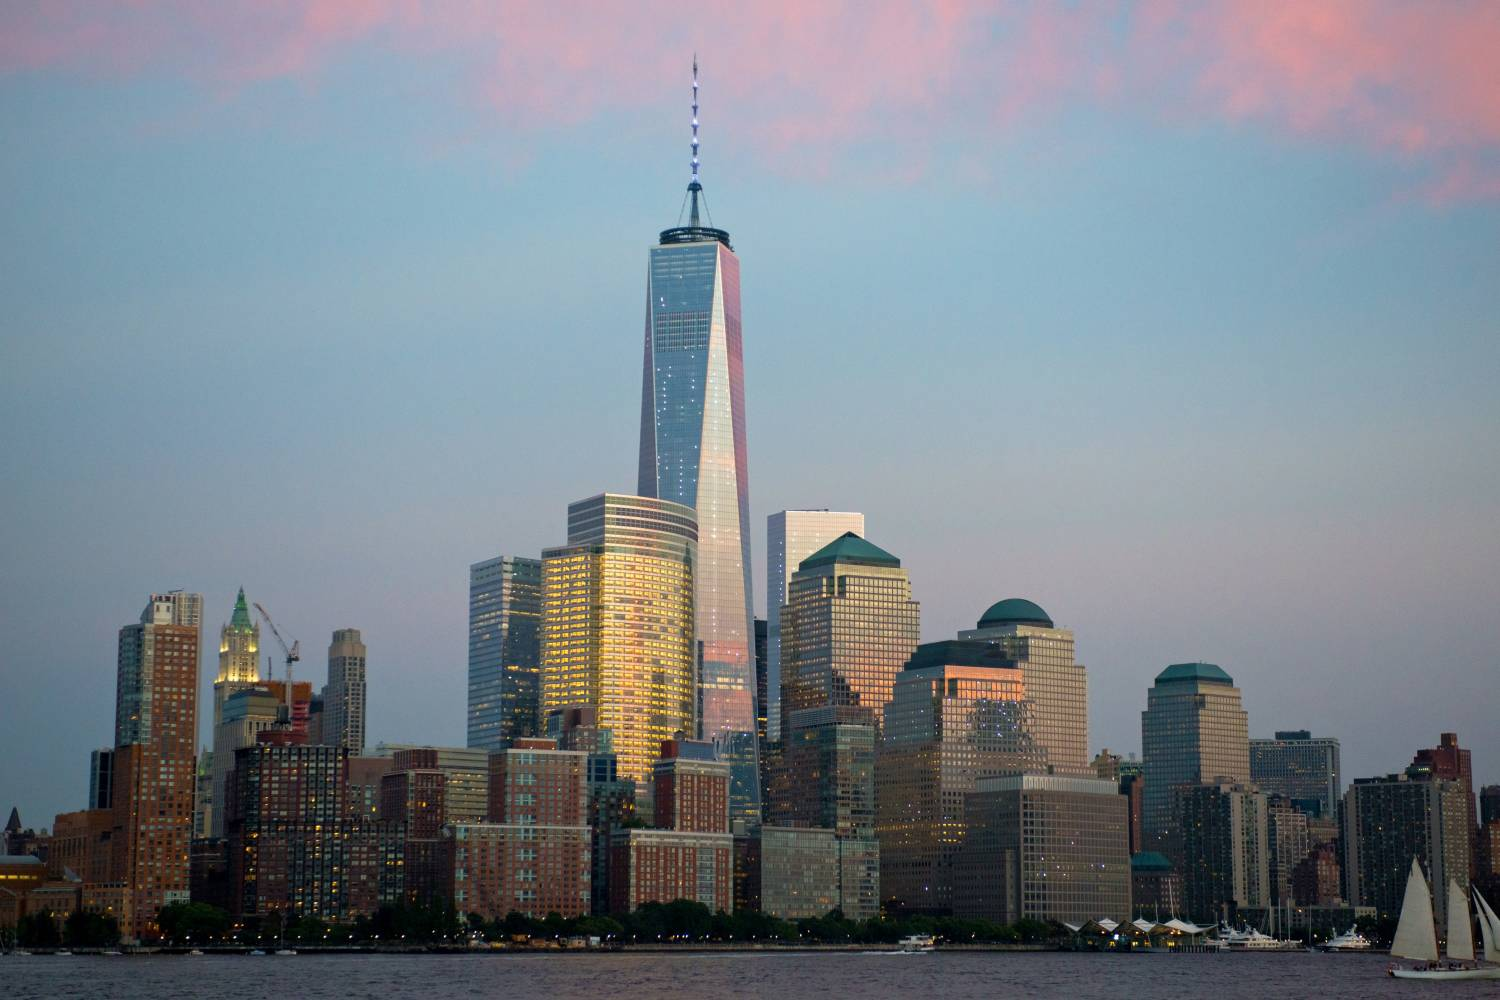 View of the New York City skyline at dusk.